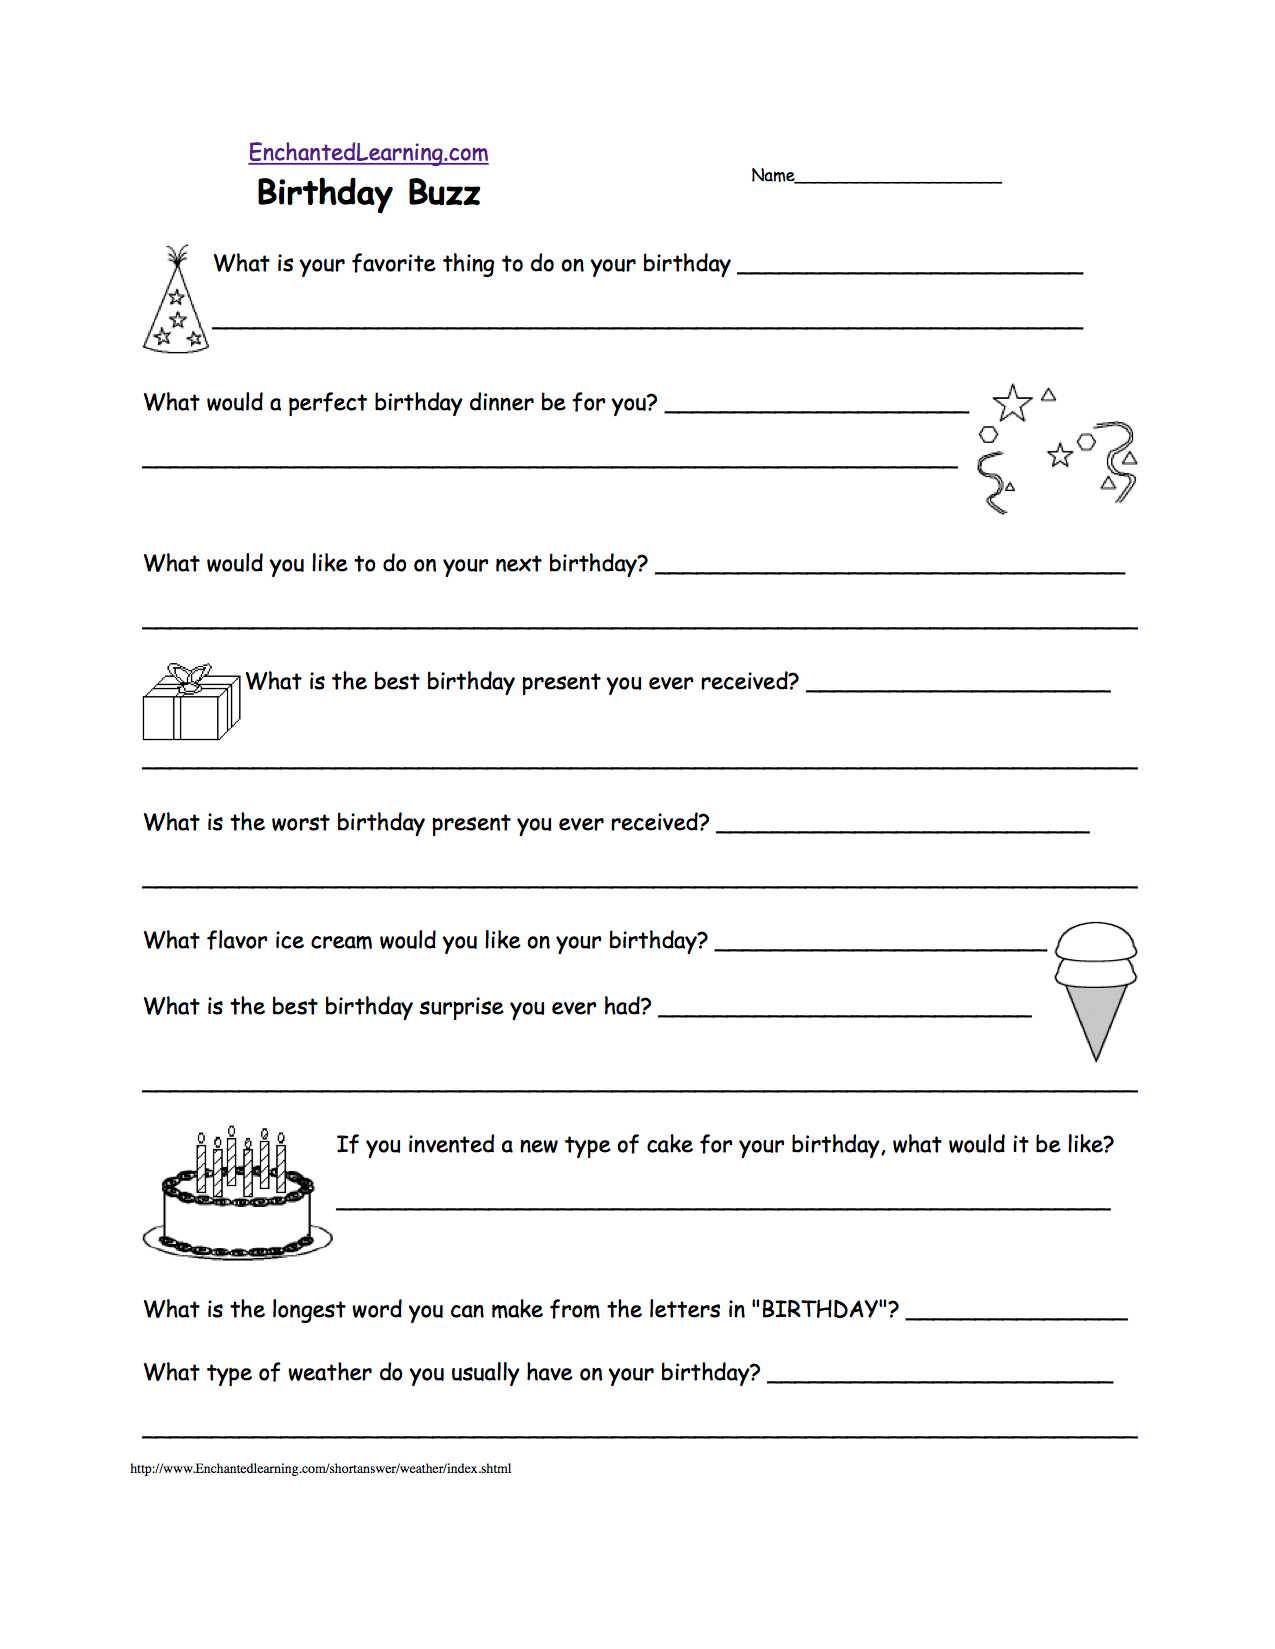 Writing Worksheets Birthday Activities At Enchantedlearning